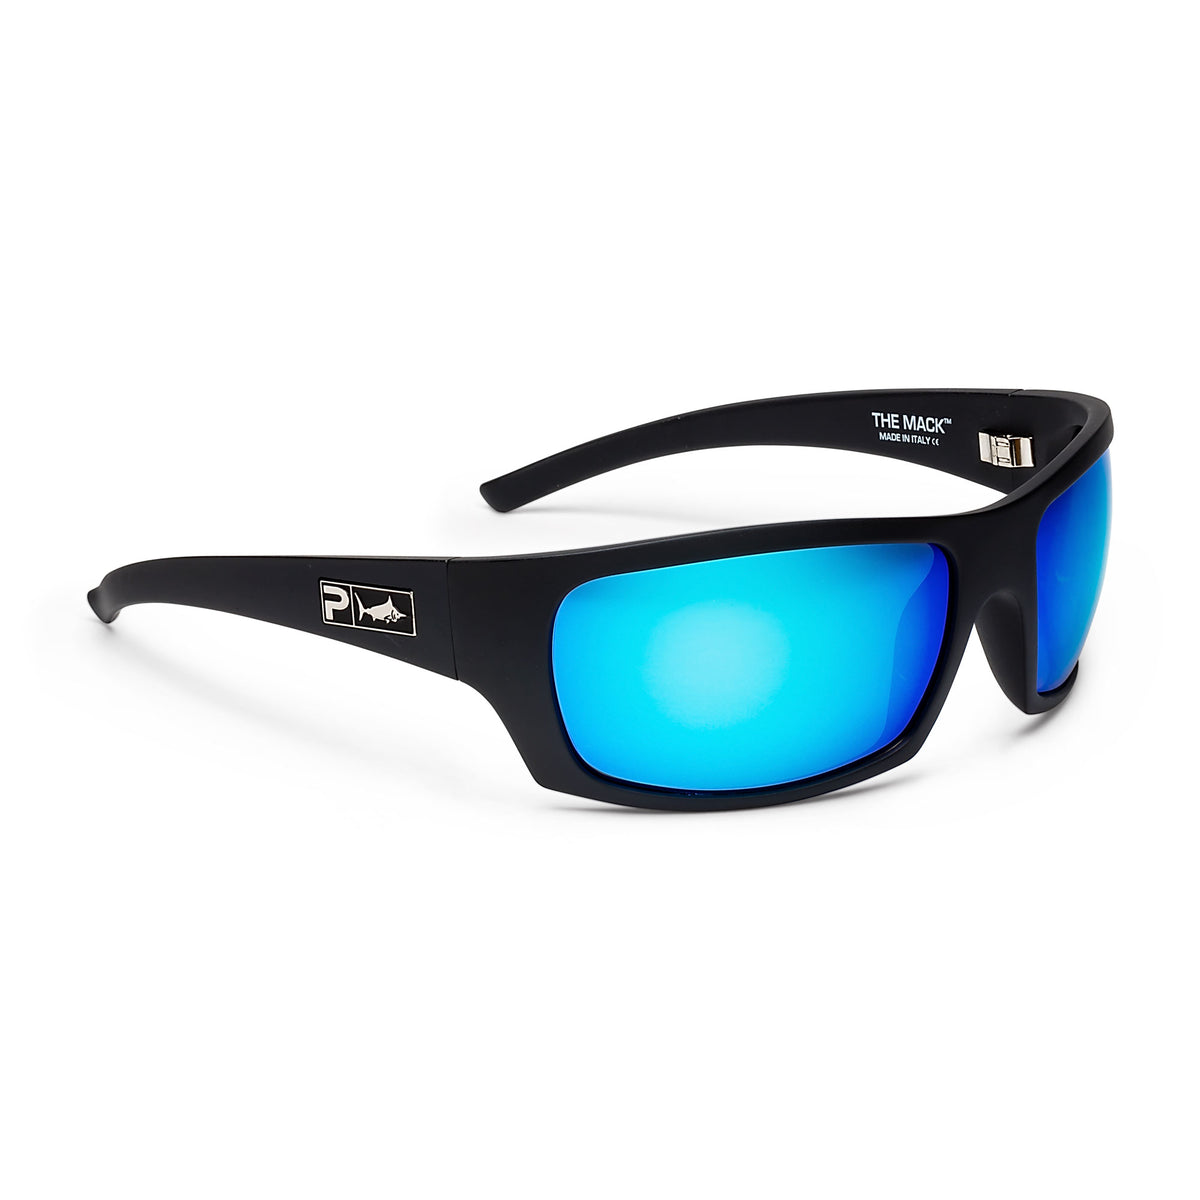 The Mack - Polarized Polycarbonate Lens Big Image - 1